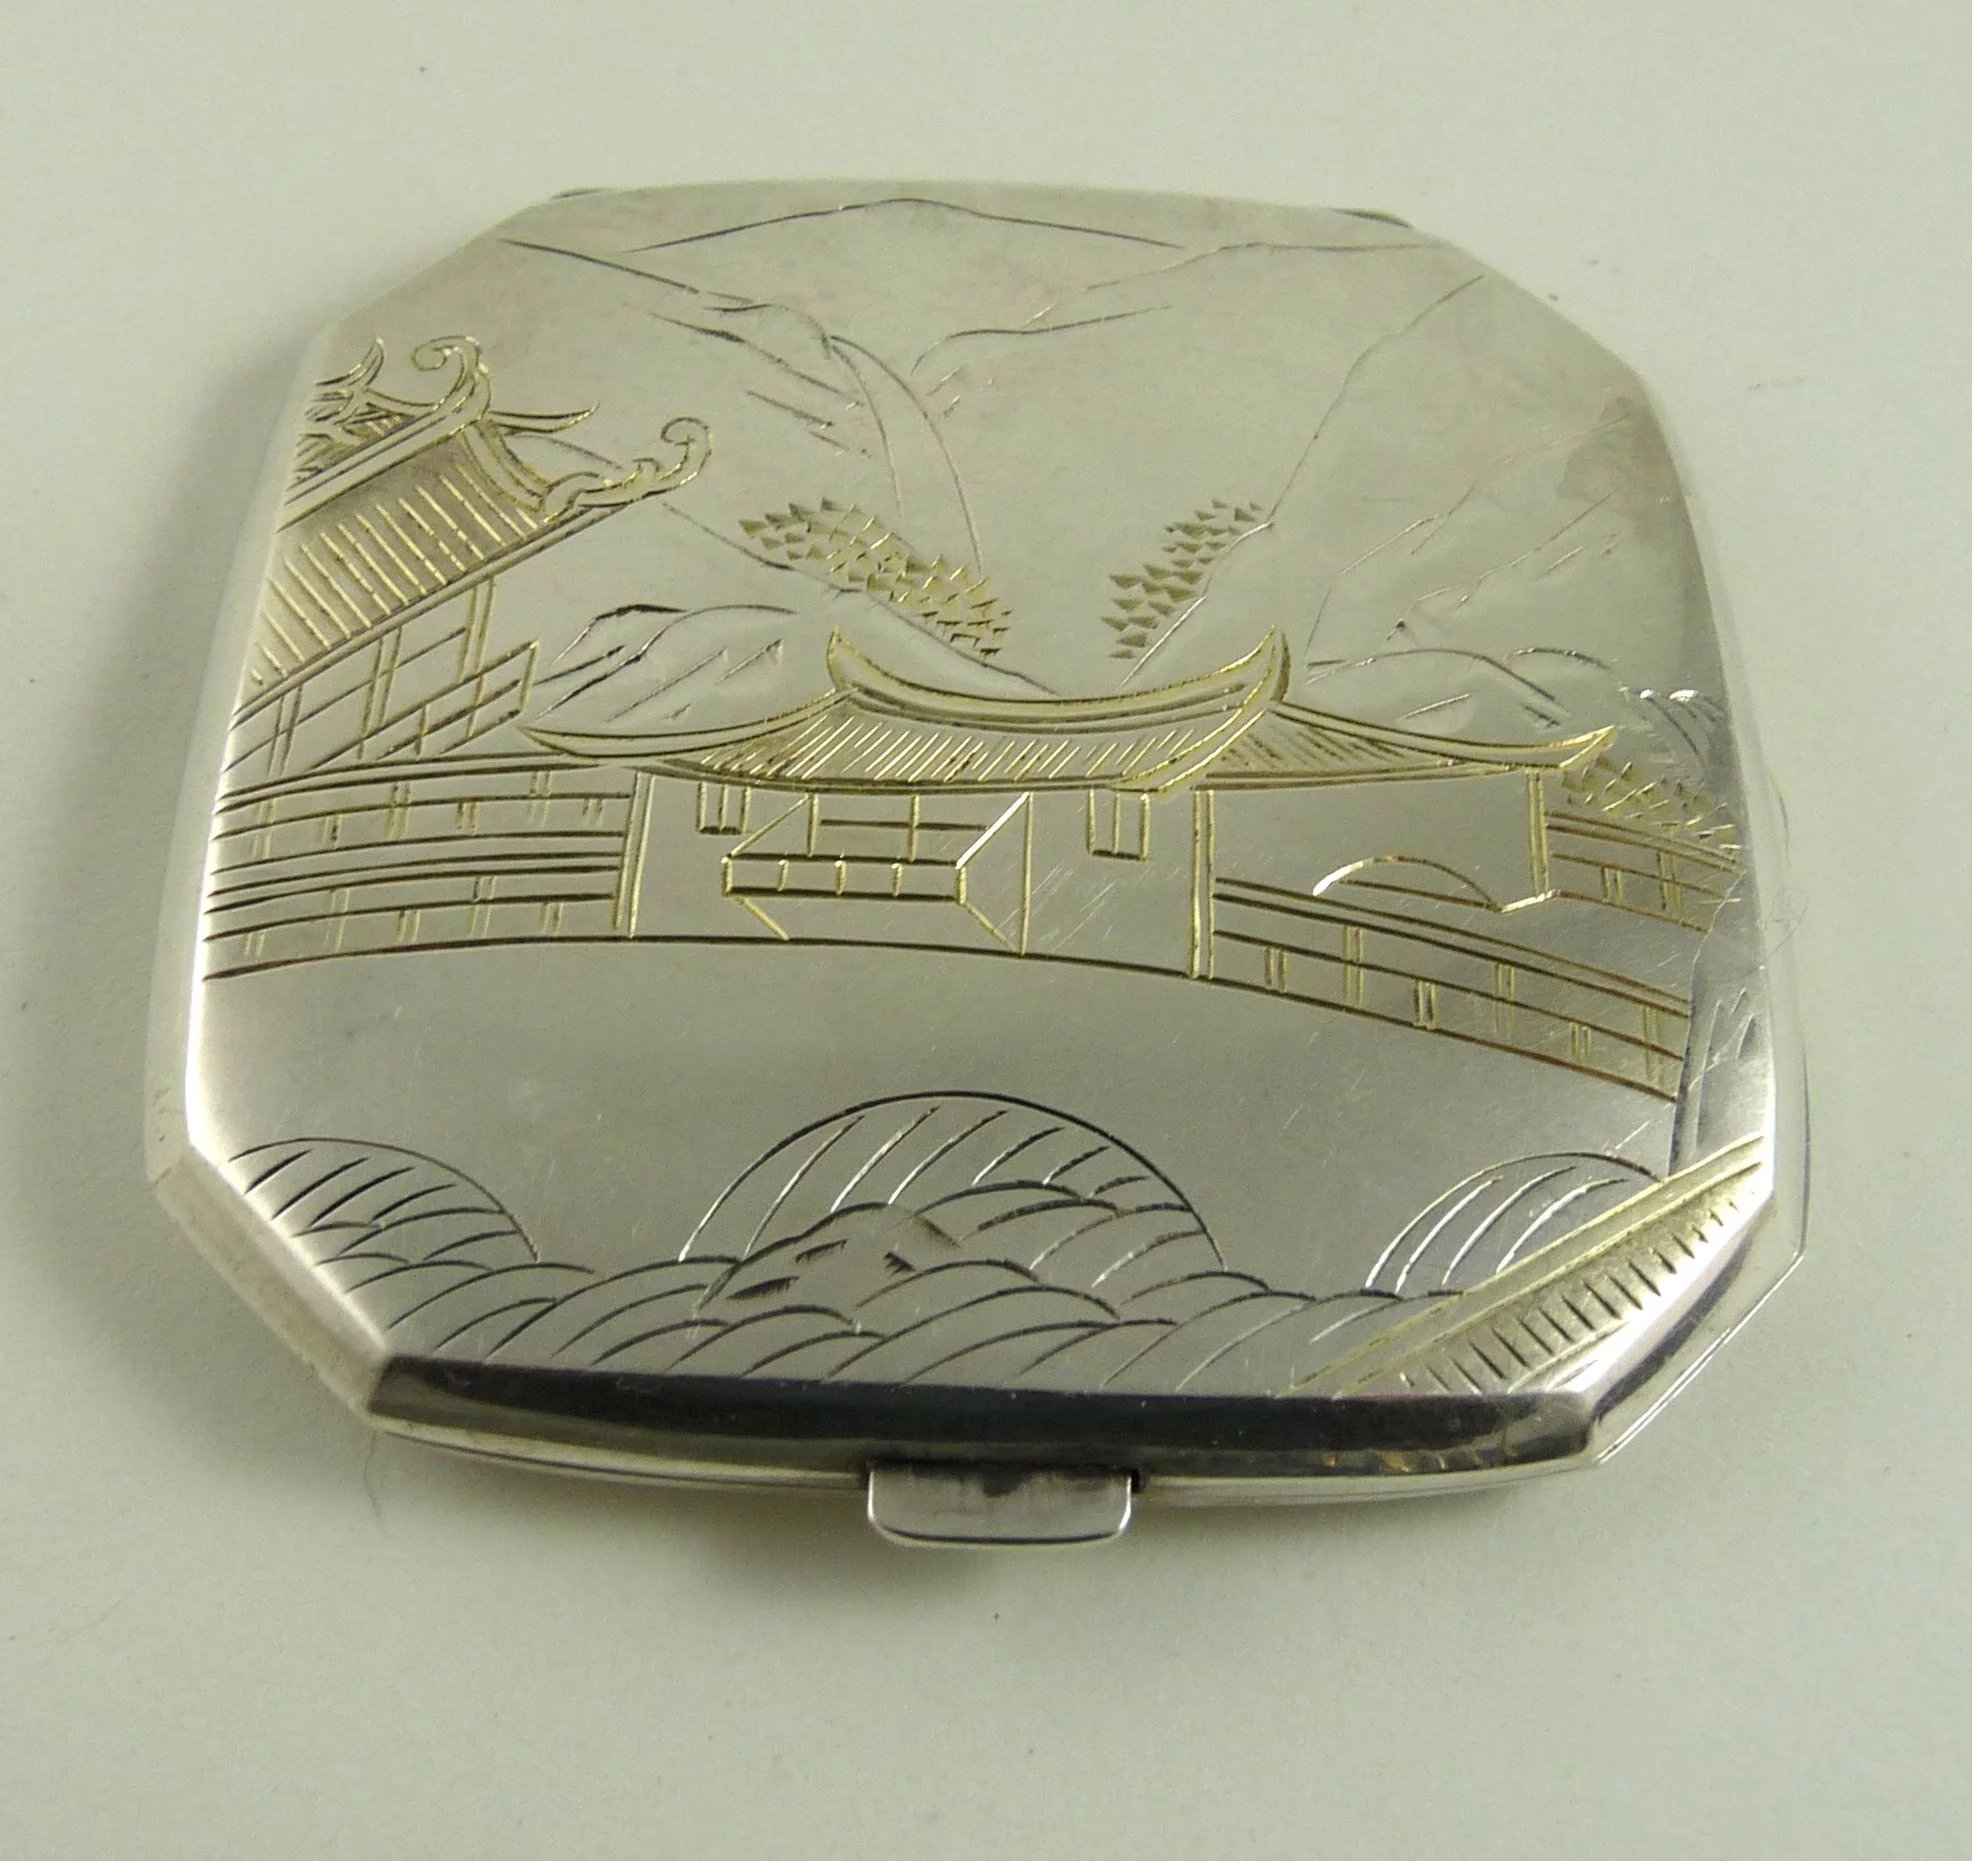 Vintage Japanese Sterling Silver Compact Ornaments